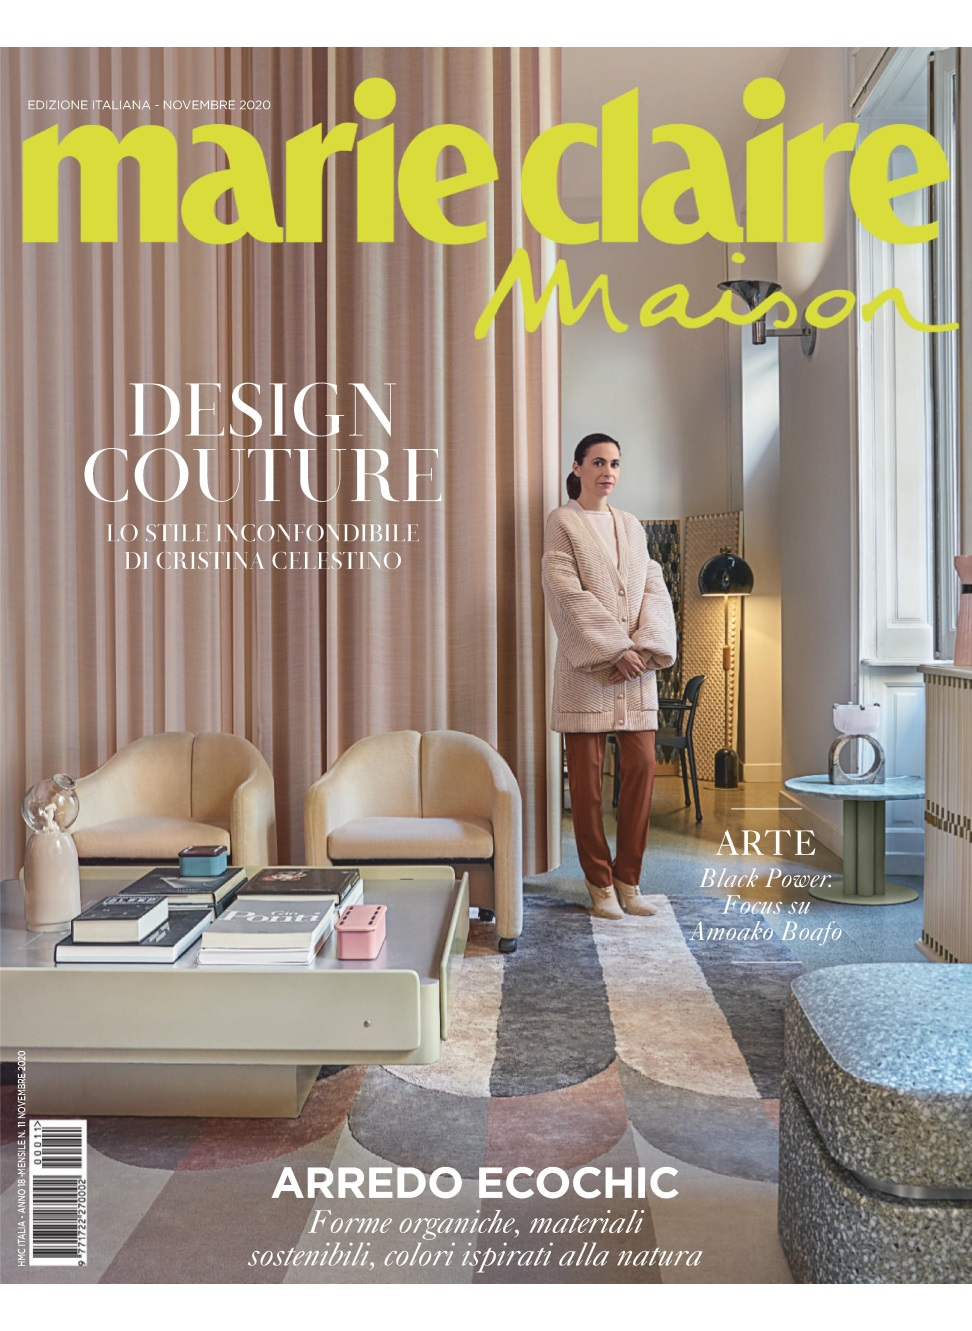 MANFREDI FINE HOTELS COLLECTION – MARIE CLAIRE MAISON – NOVEMBRE 2020